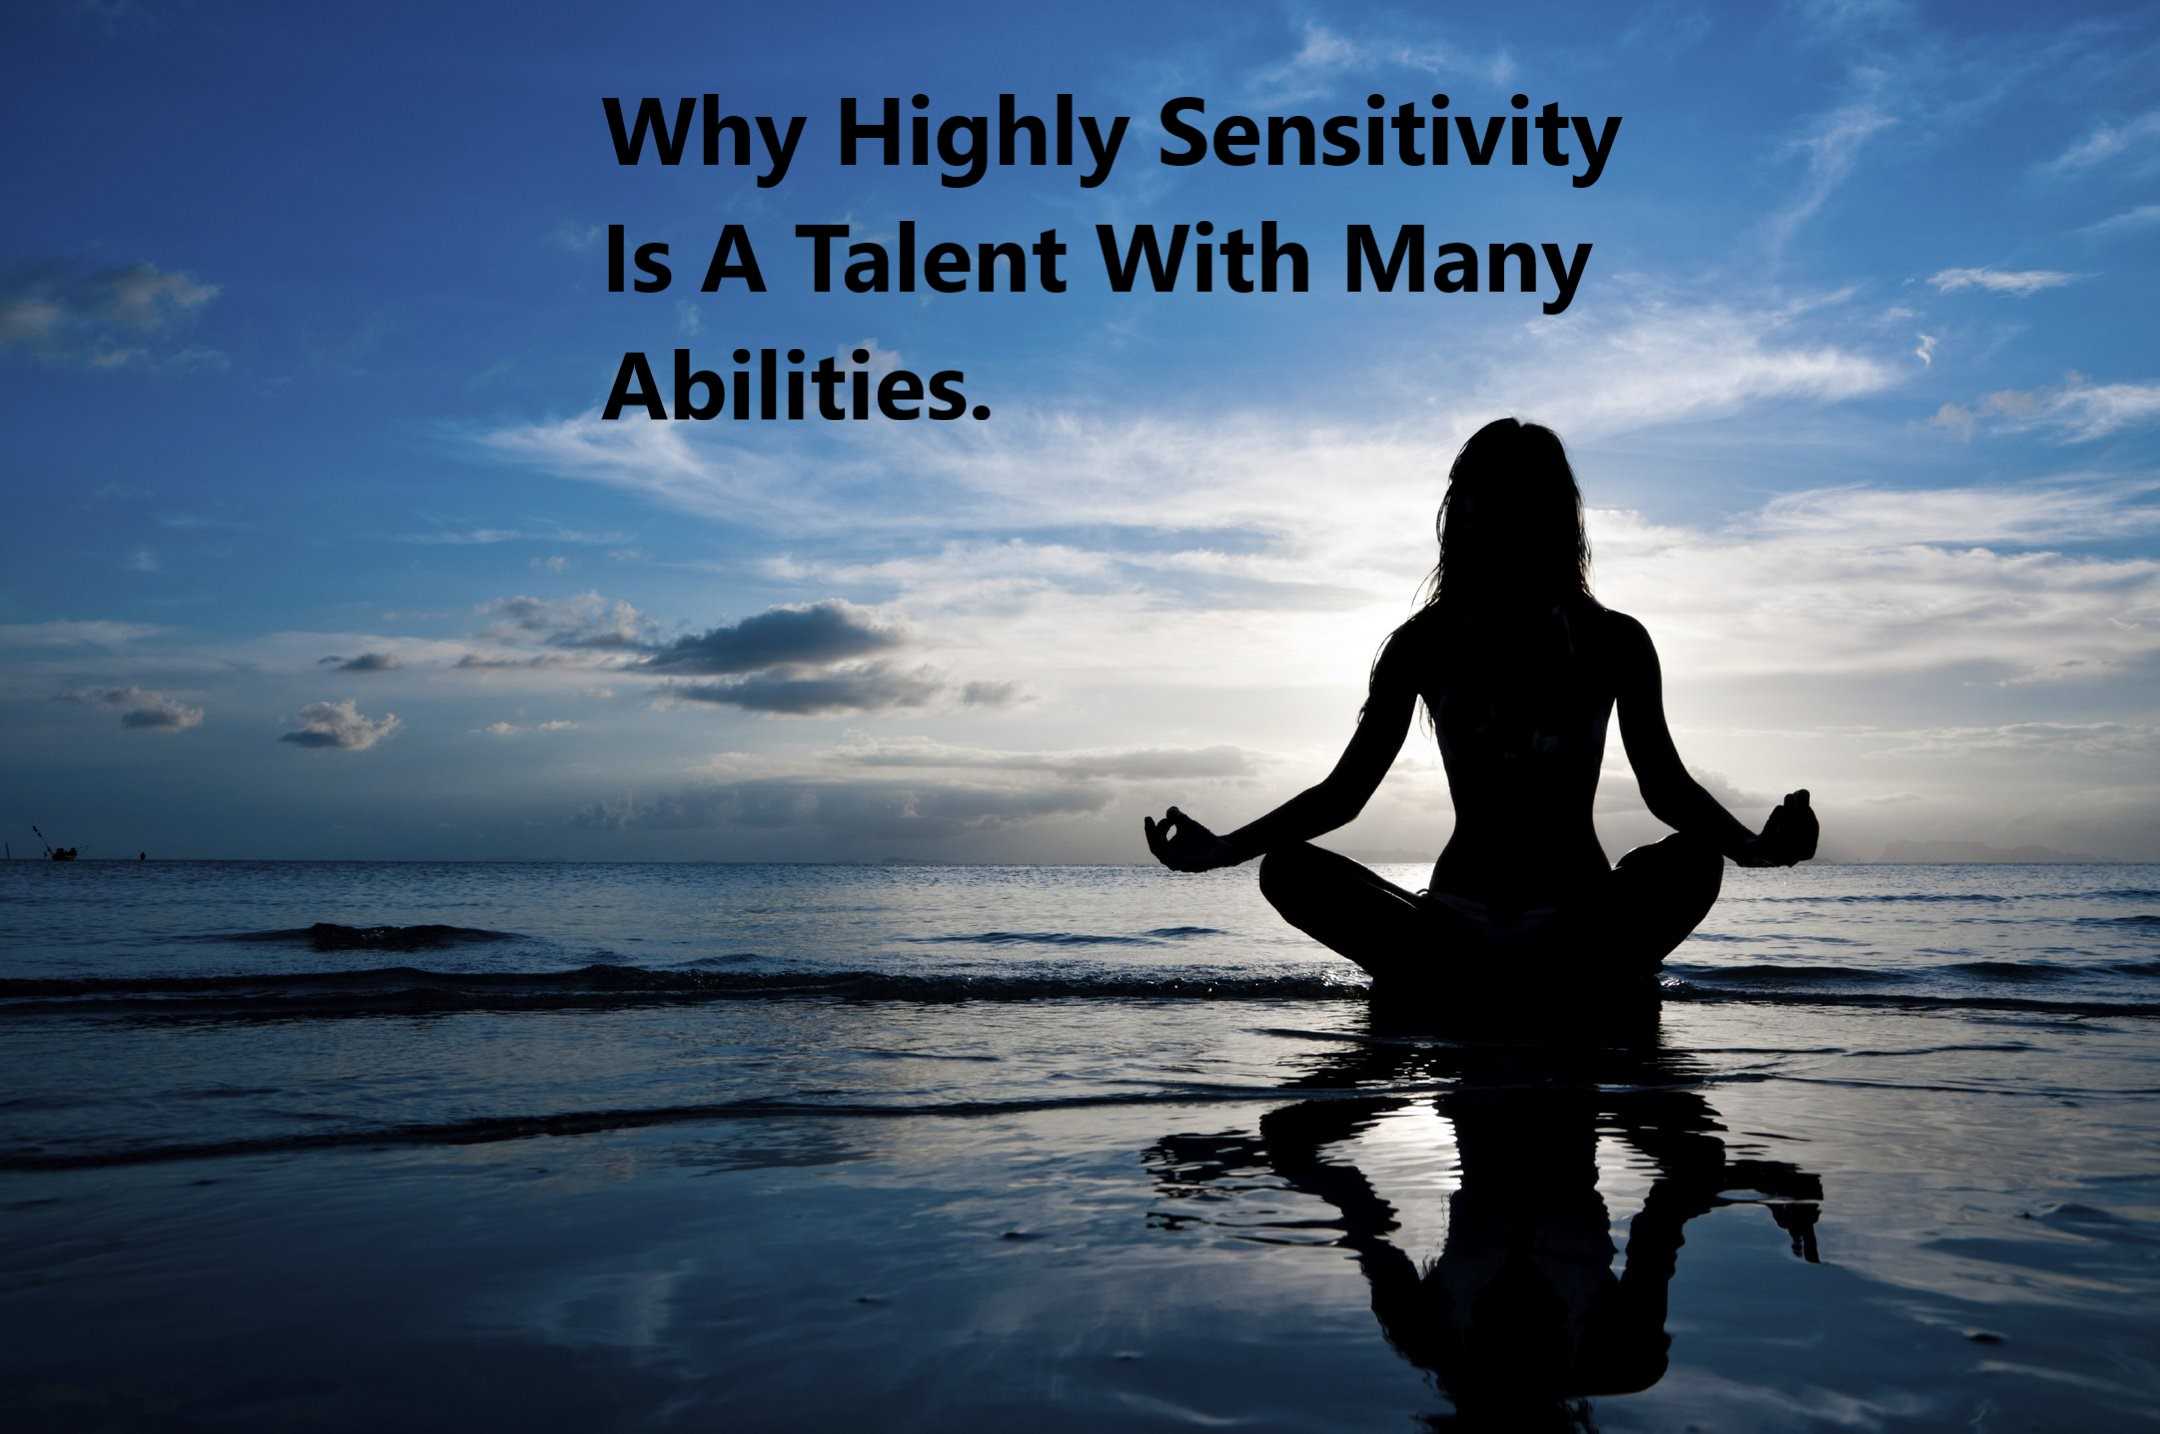 Why Highly Sensitivity Is A Talent With Many Abilities.